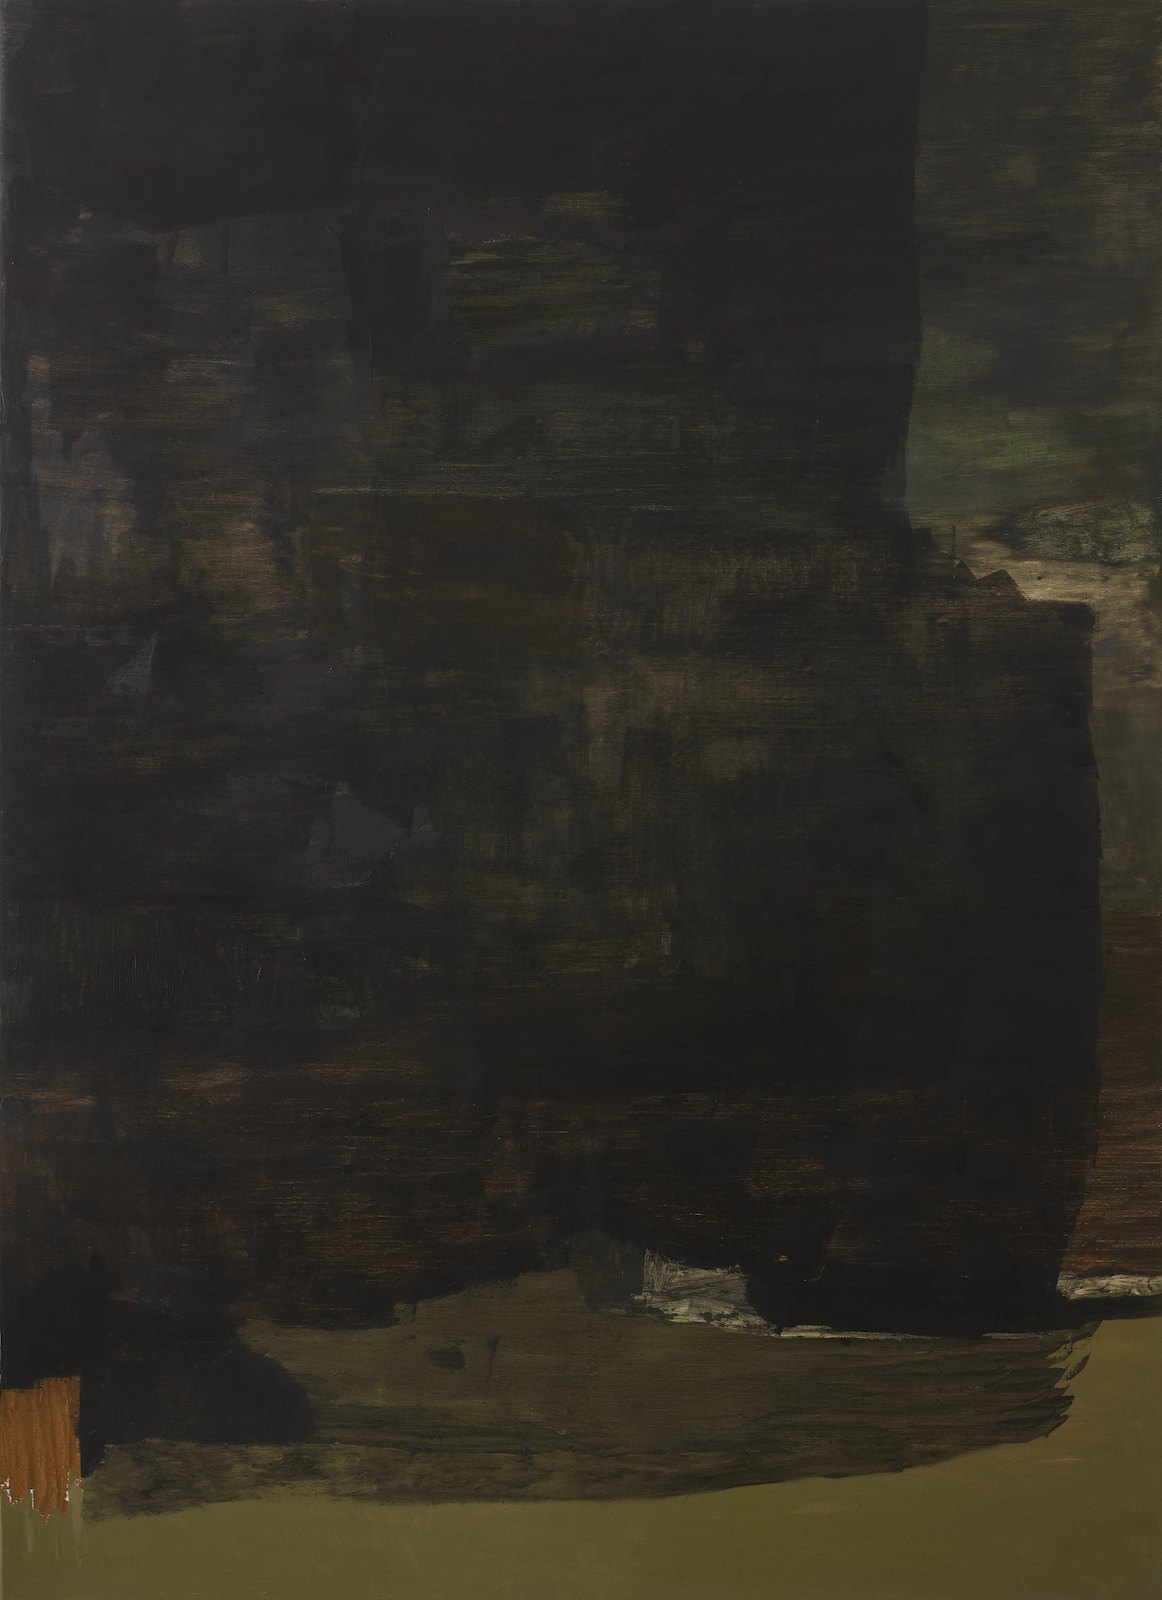 Untitled, 2011, oil on canvas, 282 x 205 cm